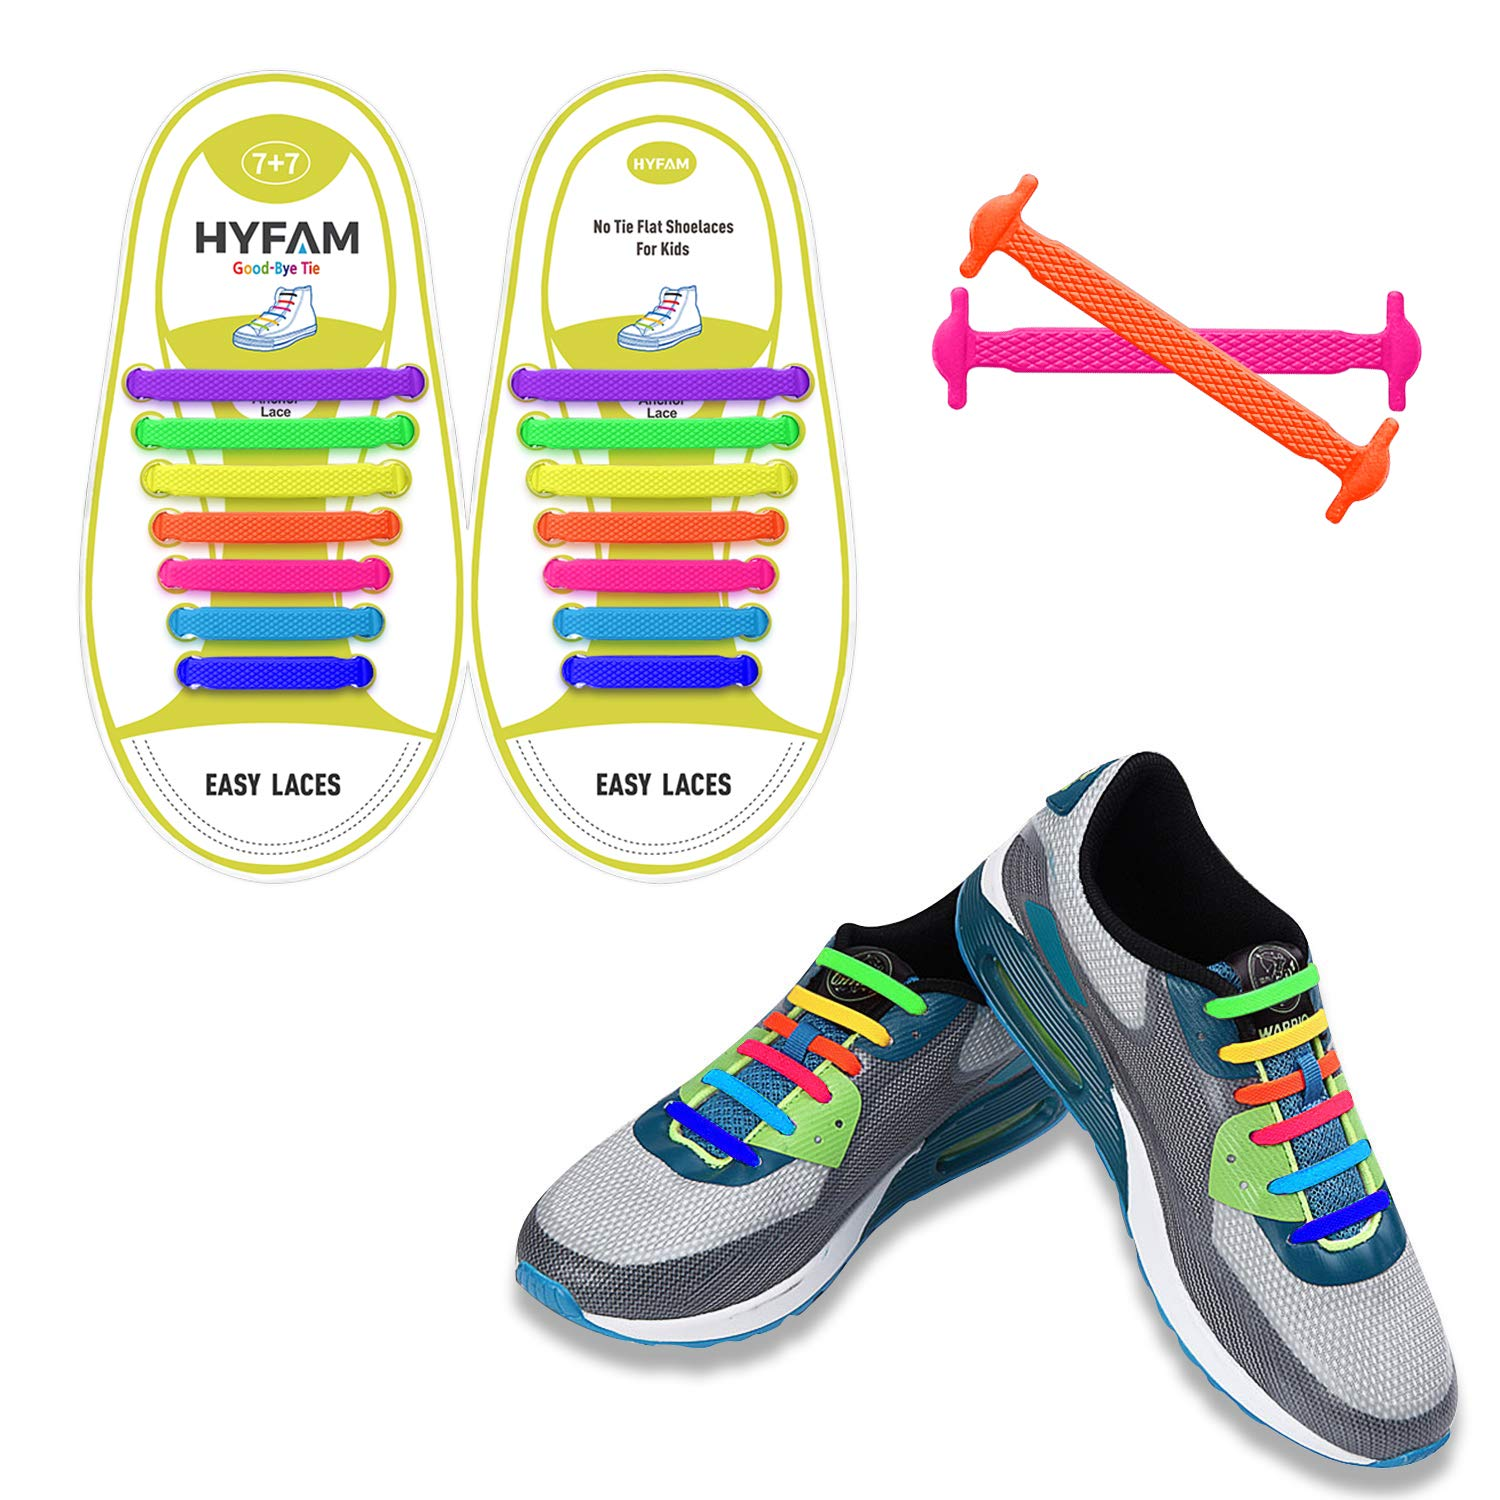 Waterproof Elastic Silicone Tieless Shoe Laces for Sneakers Board Shoes Casual Shoes HYFAM No Tie Shoelaces for Kids//Adults